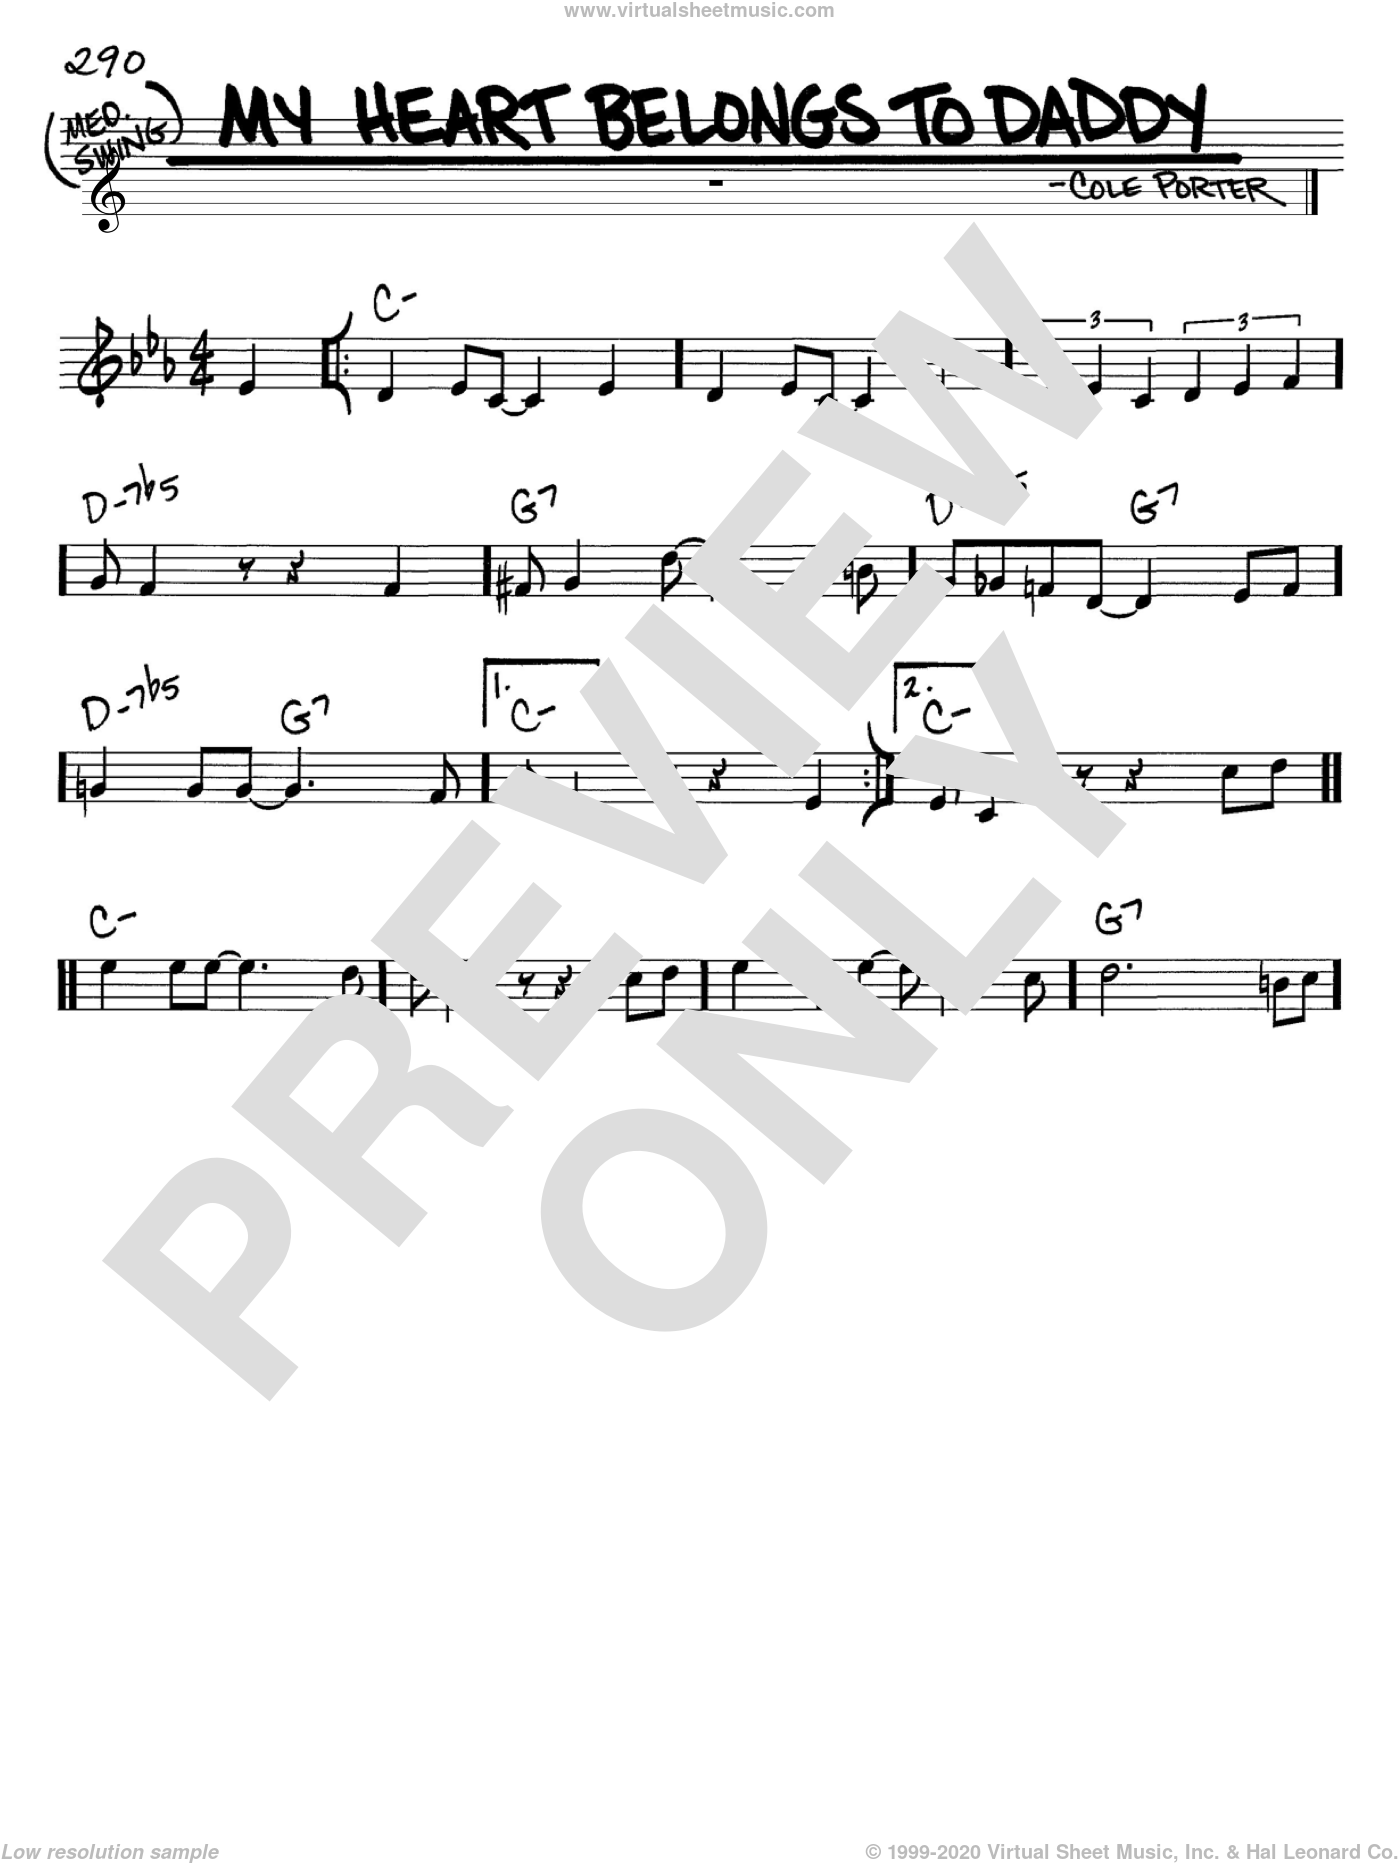 My Heart Belongs To Daddy sheet music for voice and other instruments (C) by Cole Porter. Score Image Preview.